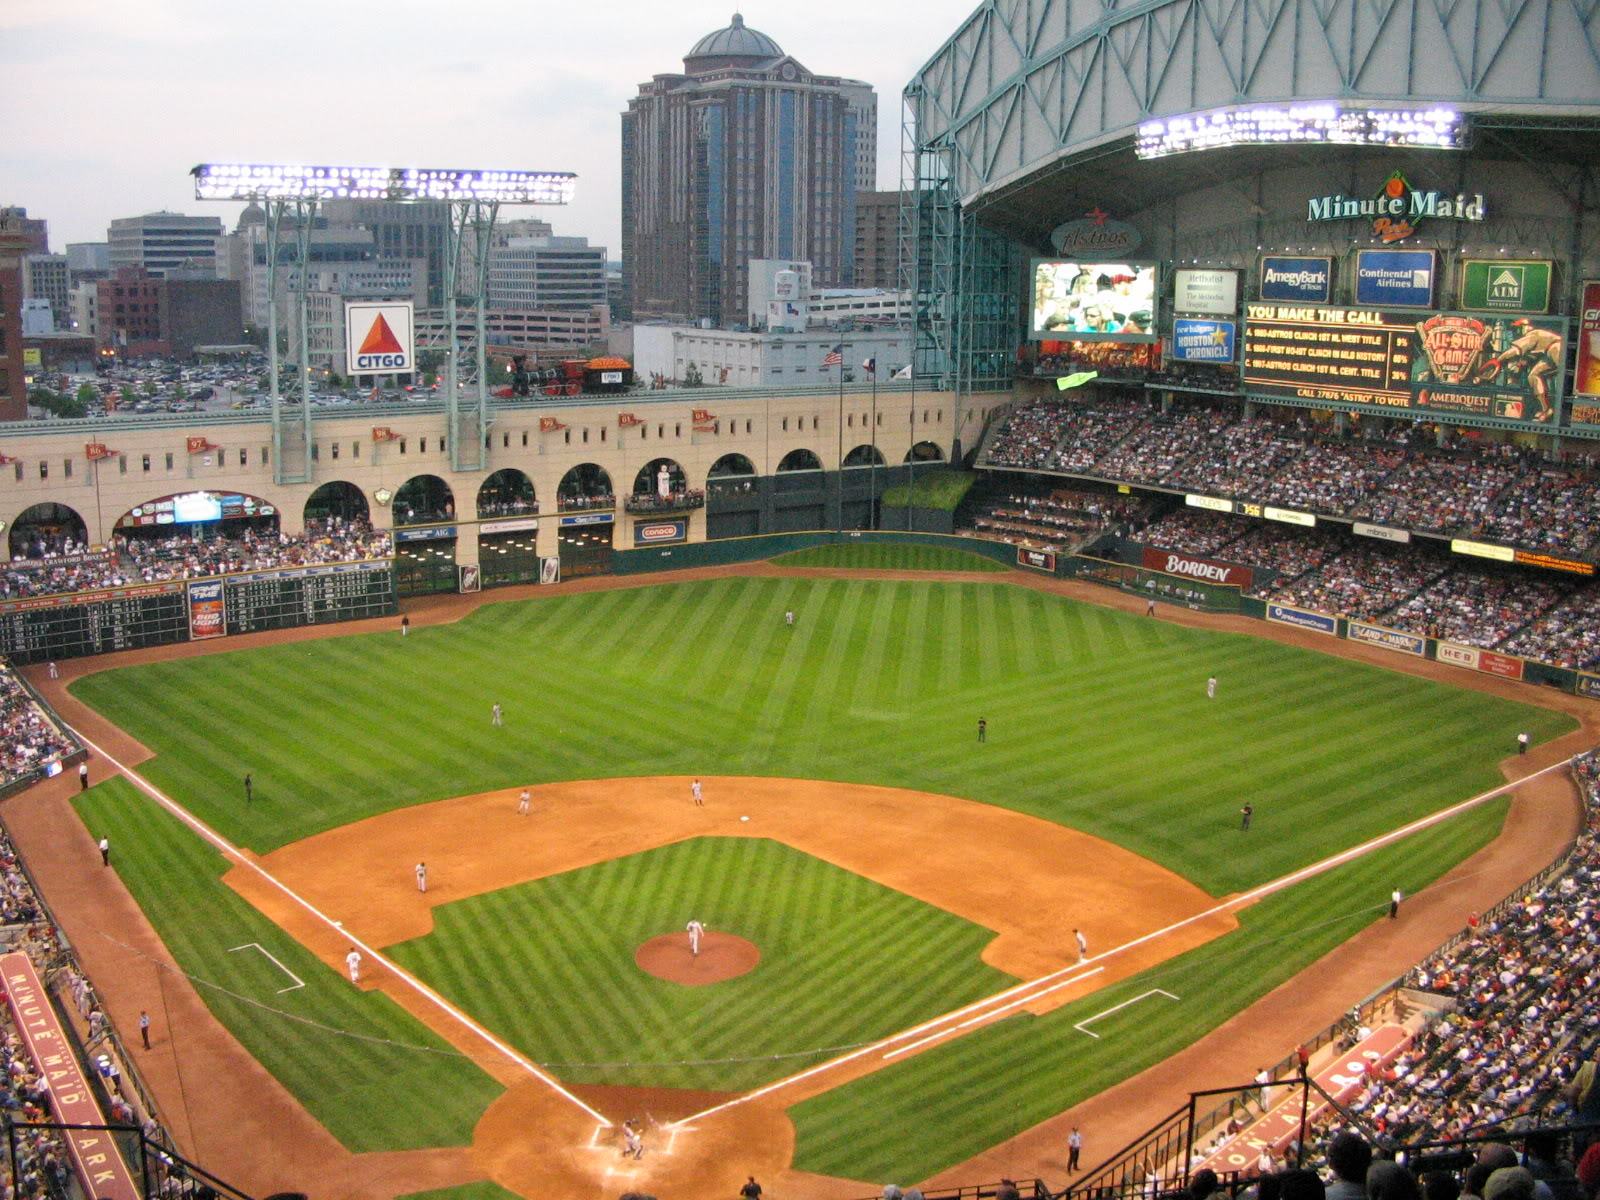 Minutemaid Park Home Of The Houston Astros Minute Maid Park Minute Maid Park Houston Baseball Park